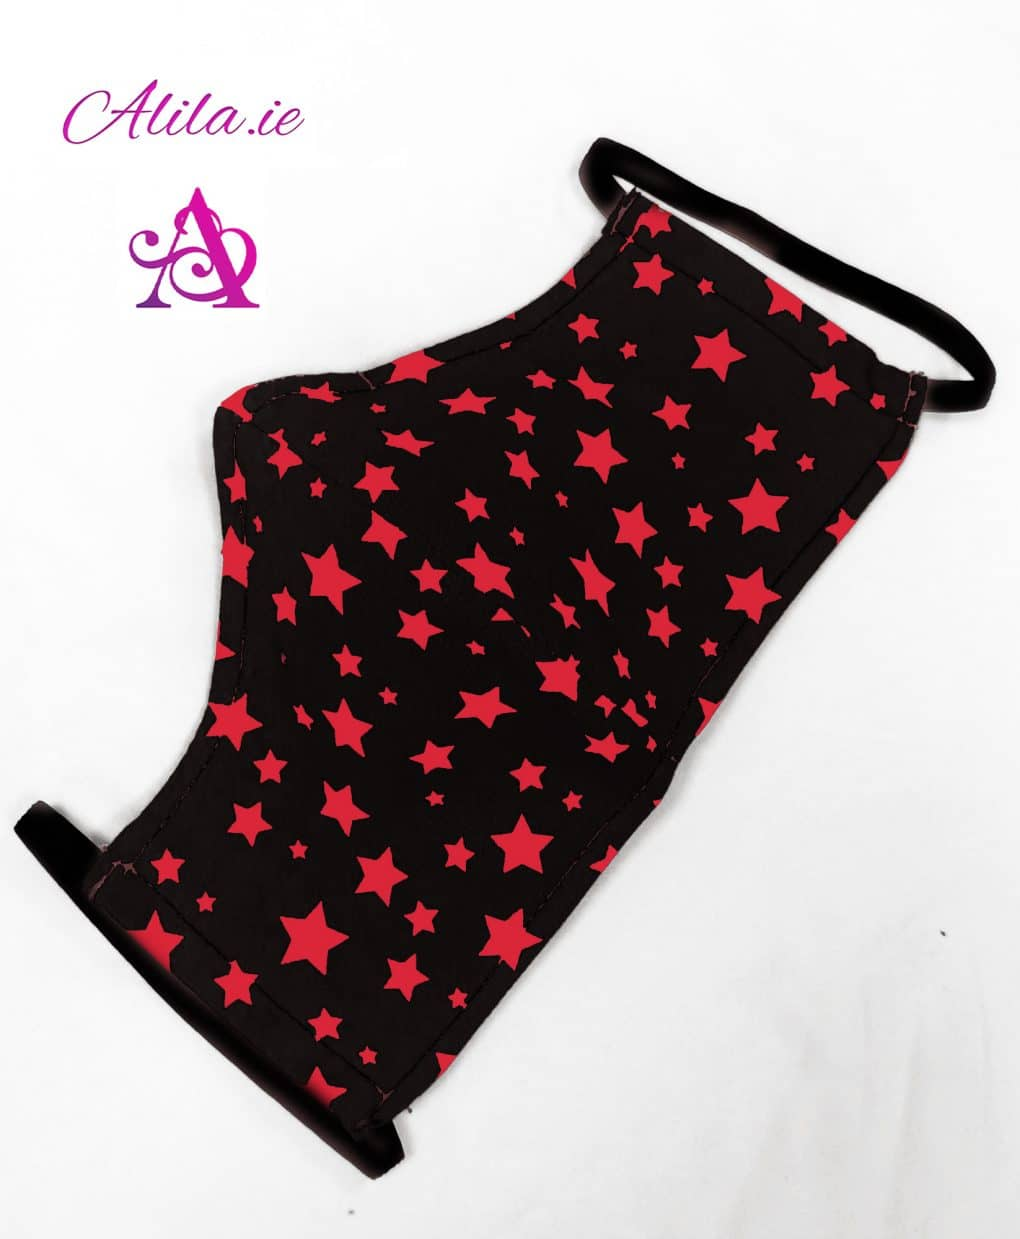 Black-and-red-stars-Face-mask-Alila-Boutique-Face-Covering